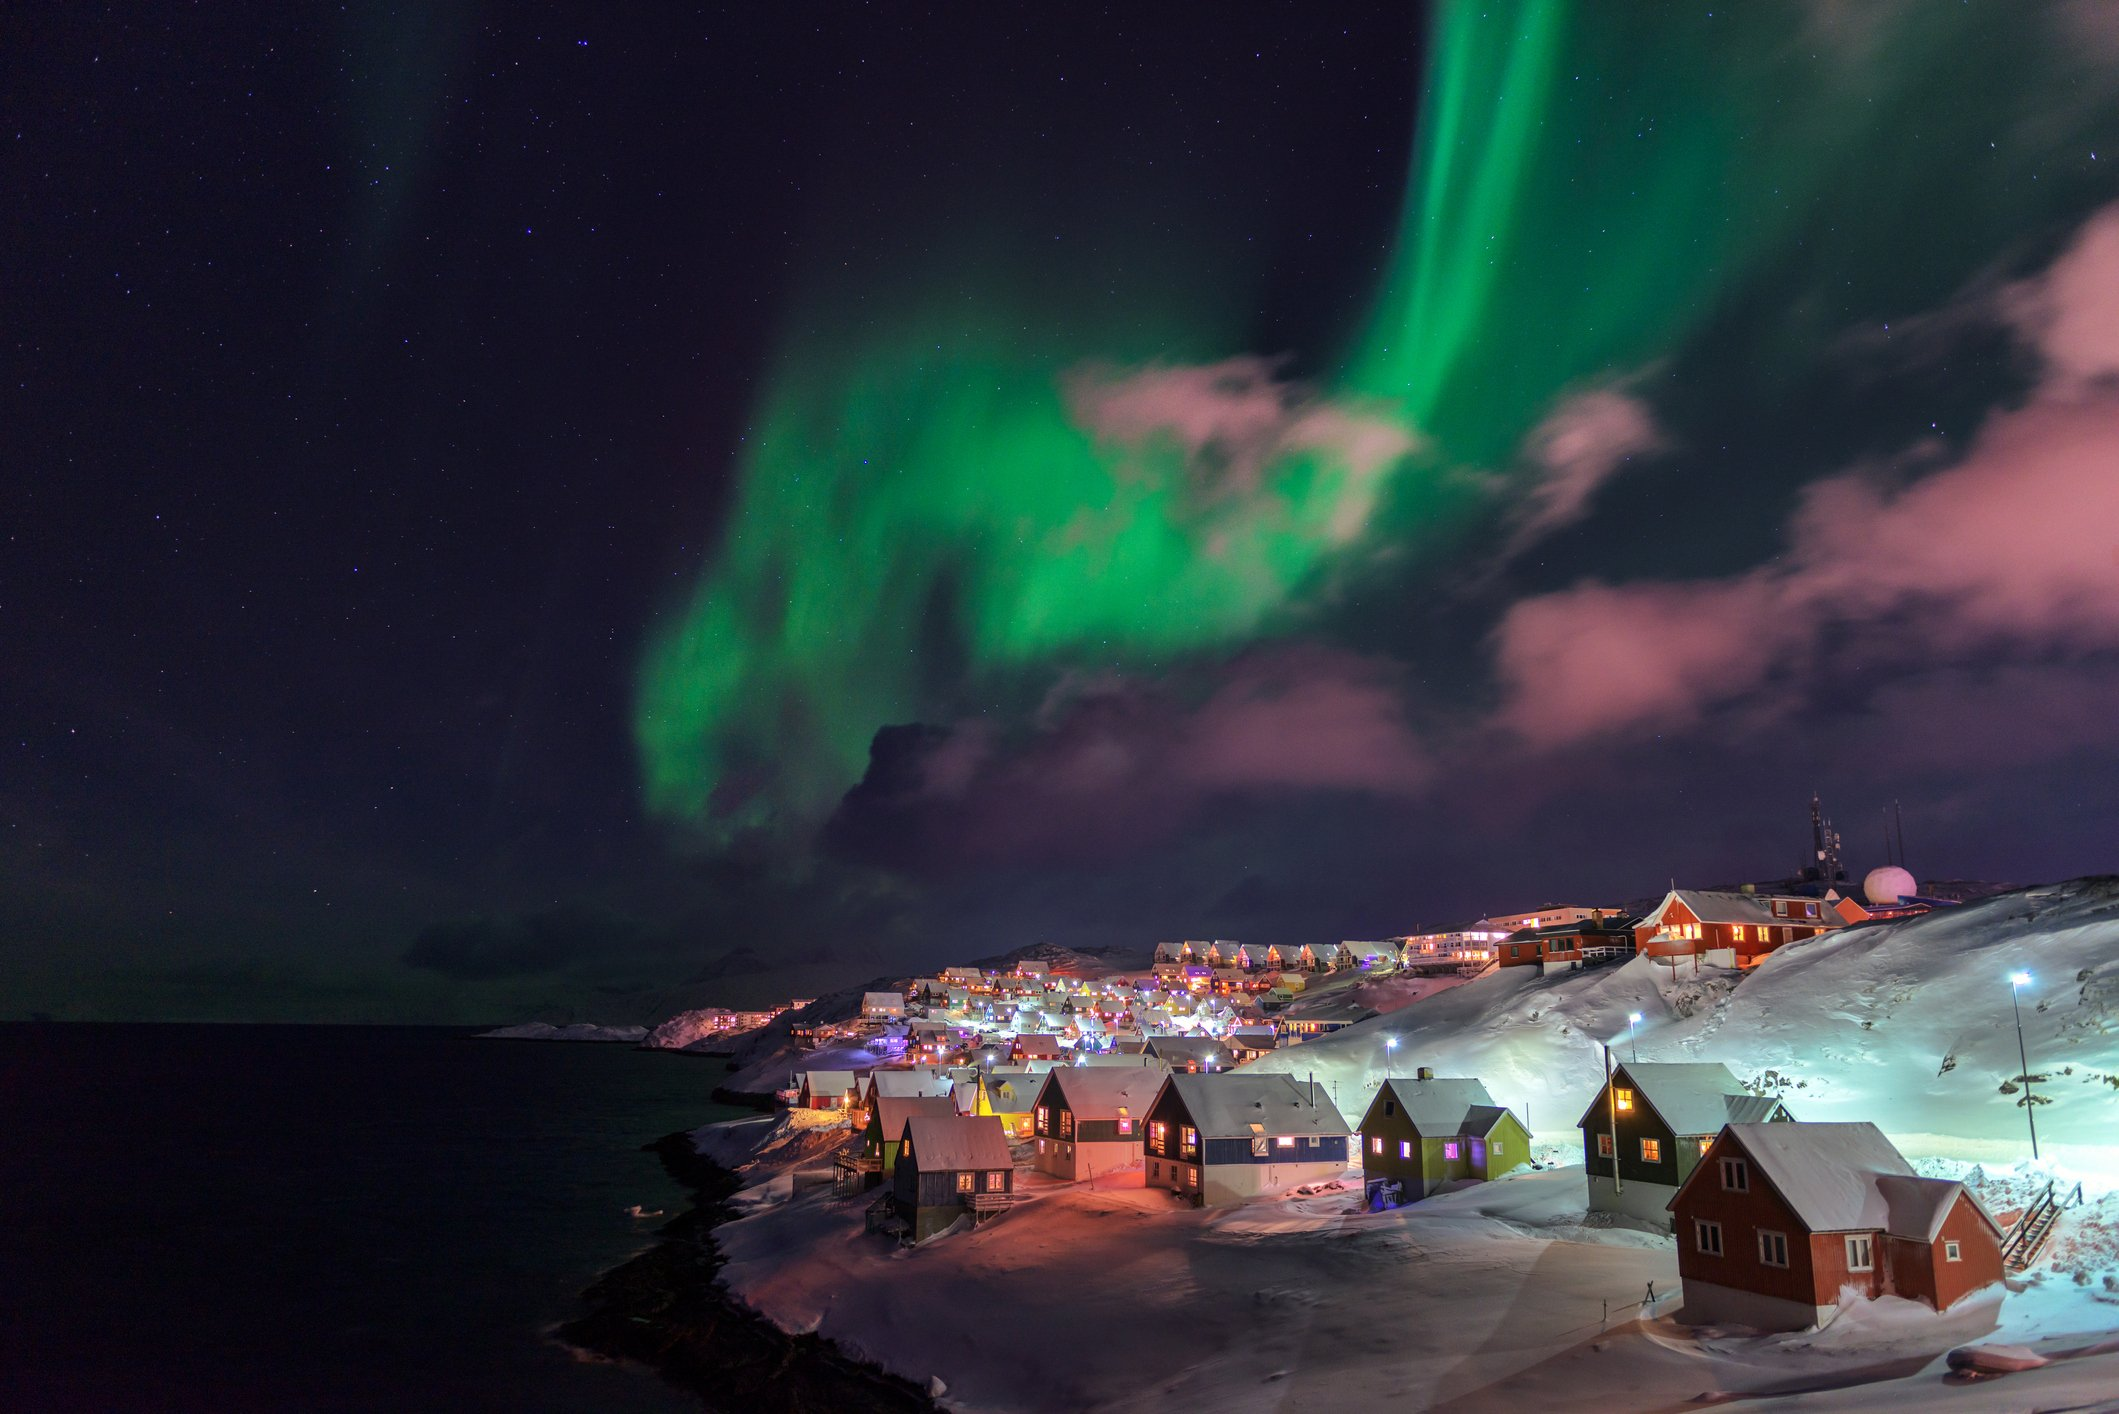 Location: Greenland. Photo Credit: Carlo Lukassen/Getty Images